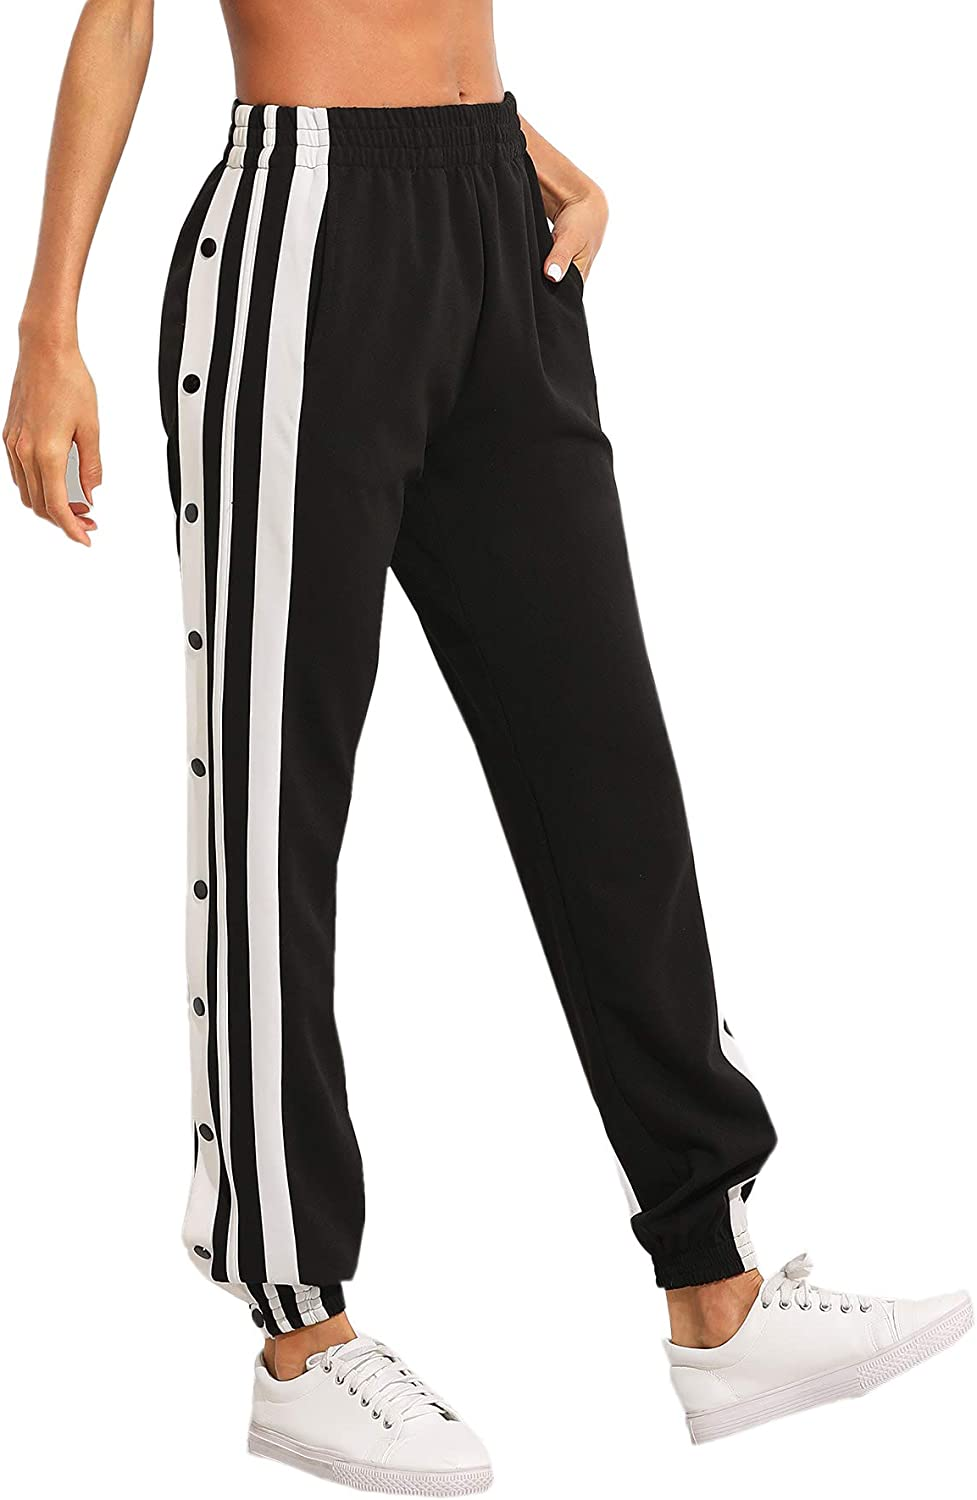 SOLY HUX Womens Sporty High Split Side Striped Joggers Snap Button Track Pants